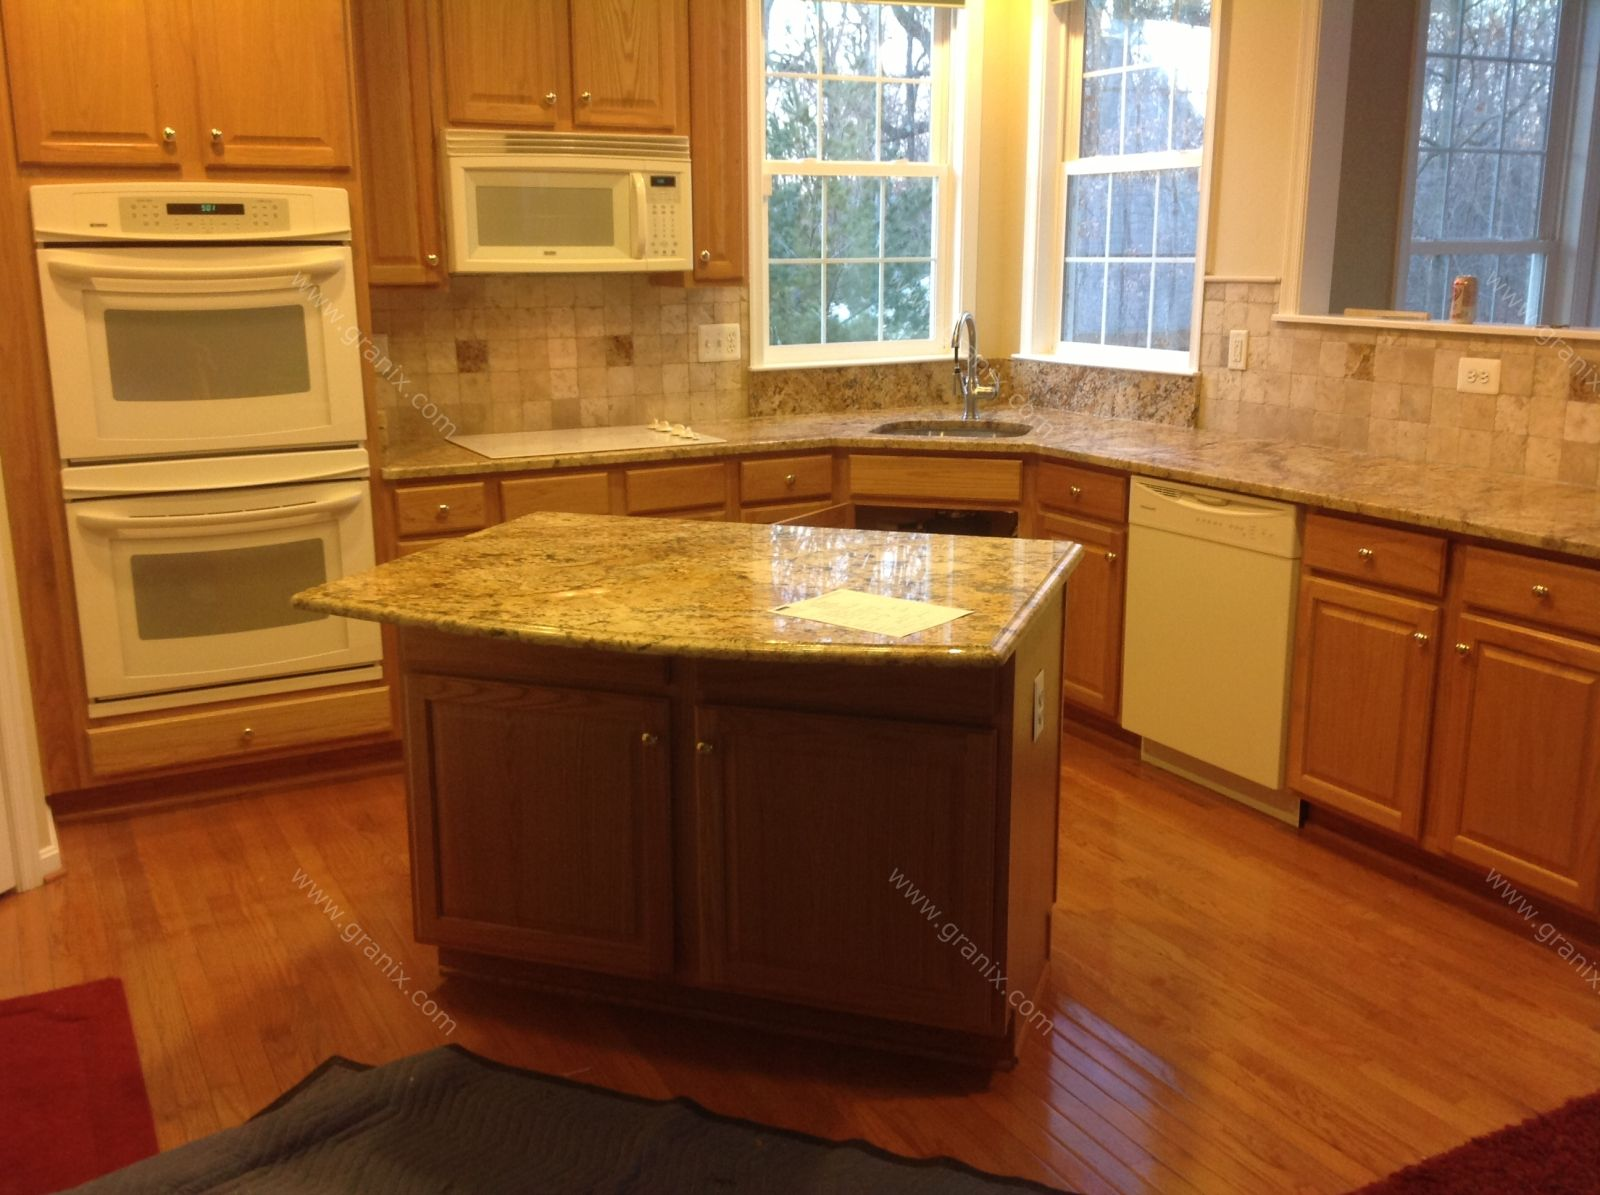 Kitchen Countertops Design Pinterest Solarius Granite Pictures Google Search Samples For